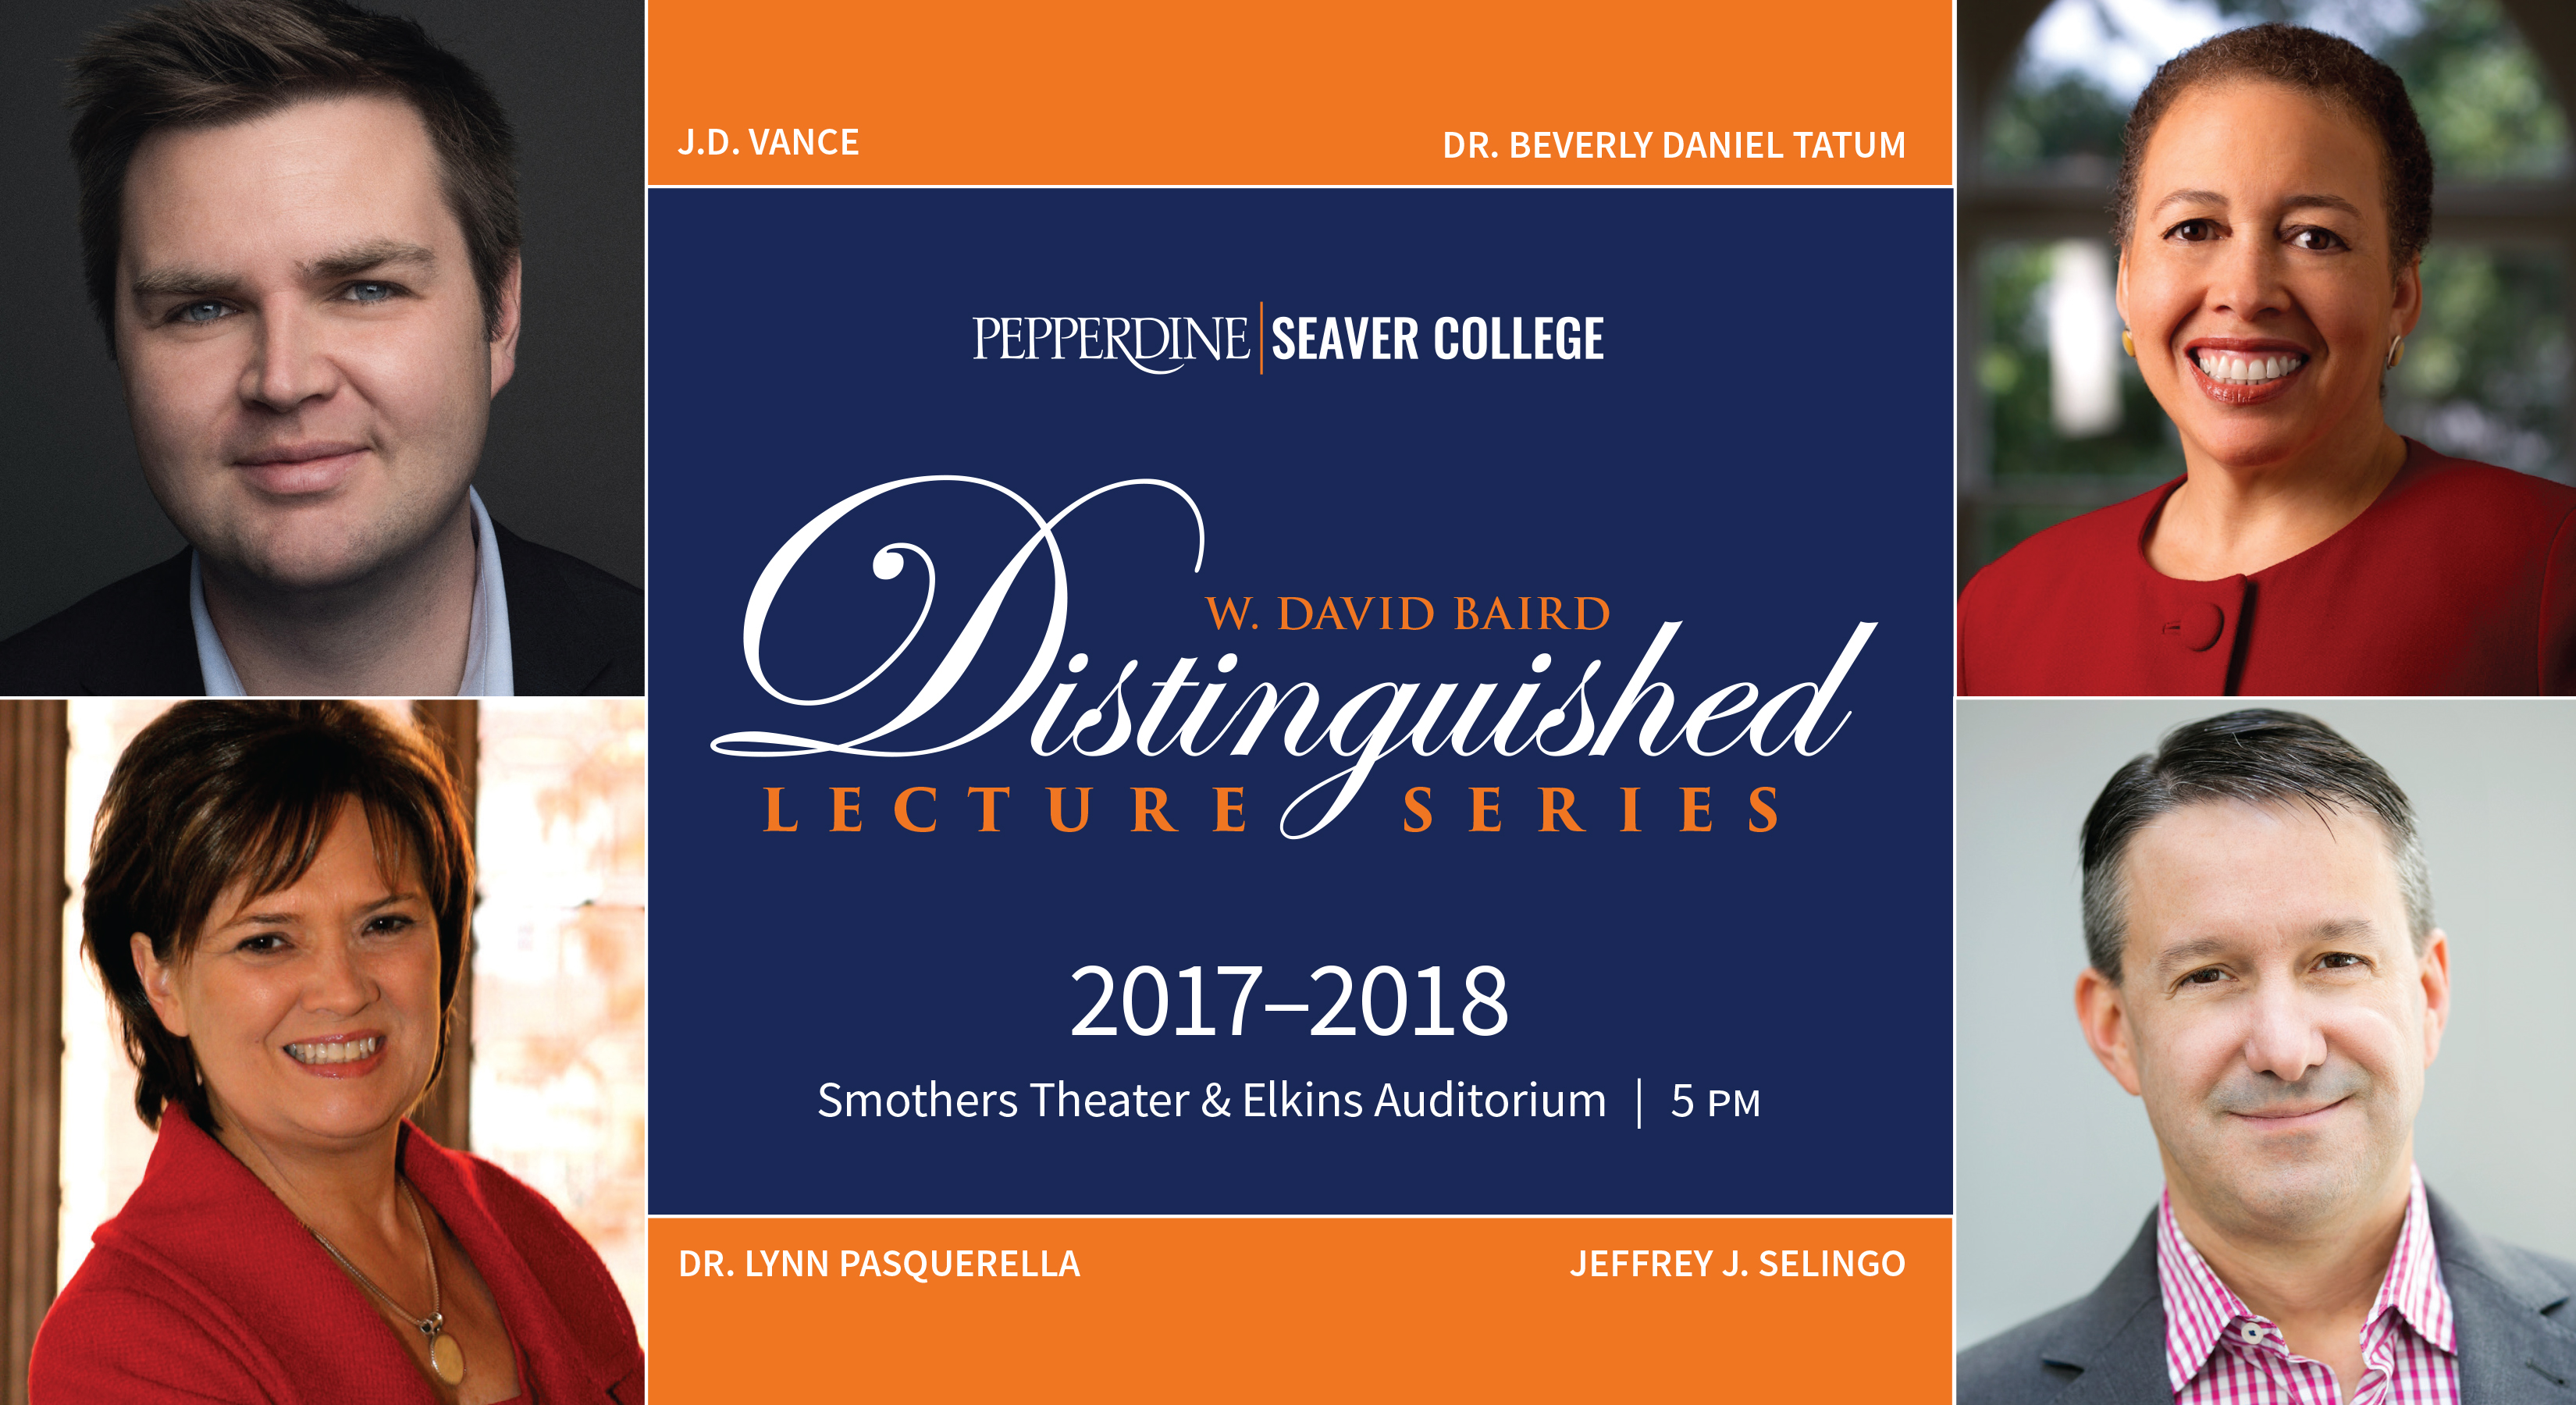 W. David Baird Distinguished Lecture Series | Pepperdine | Seaver College